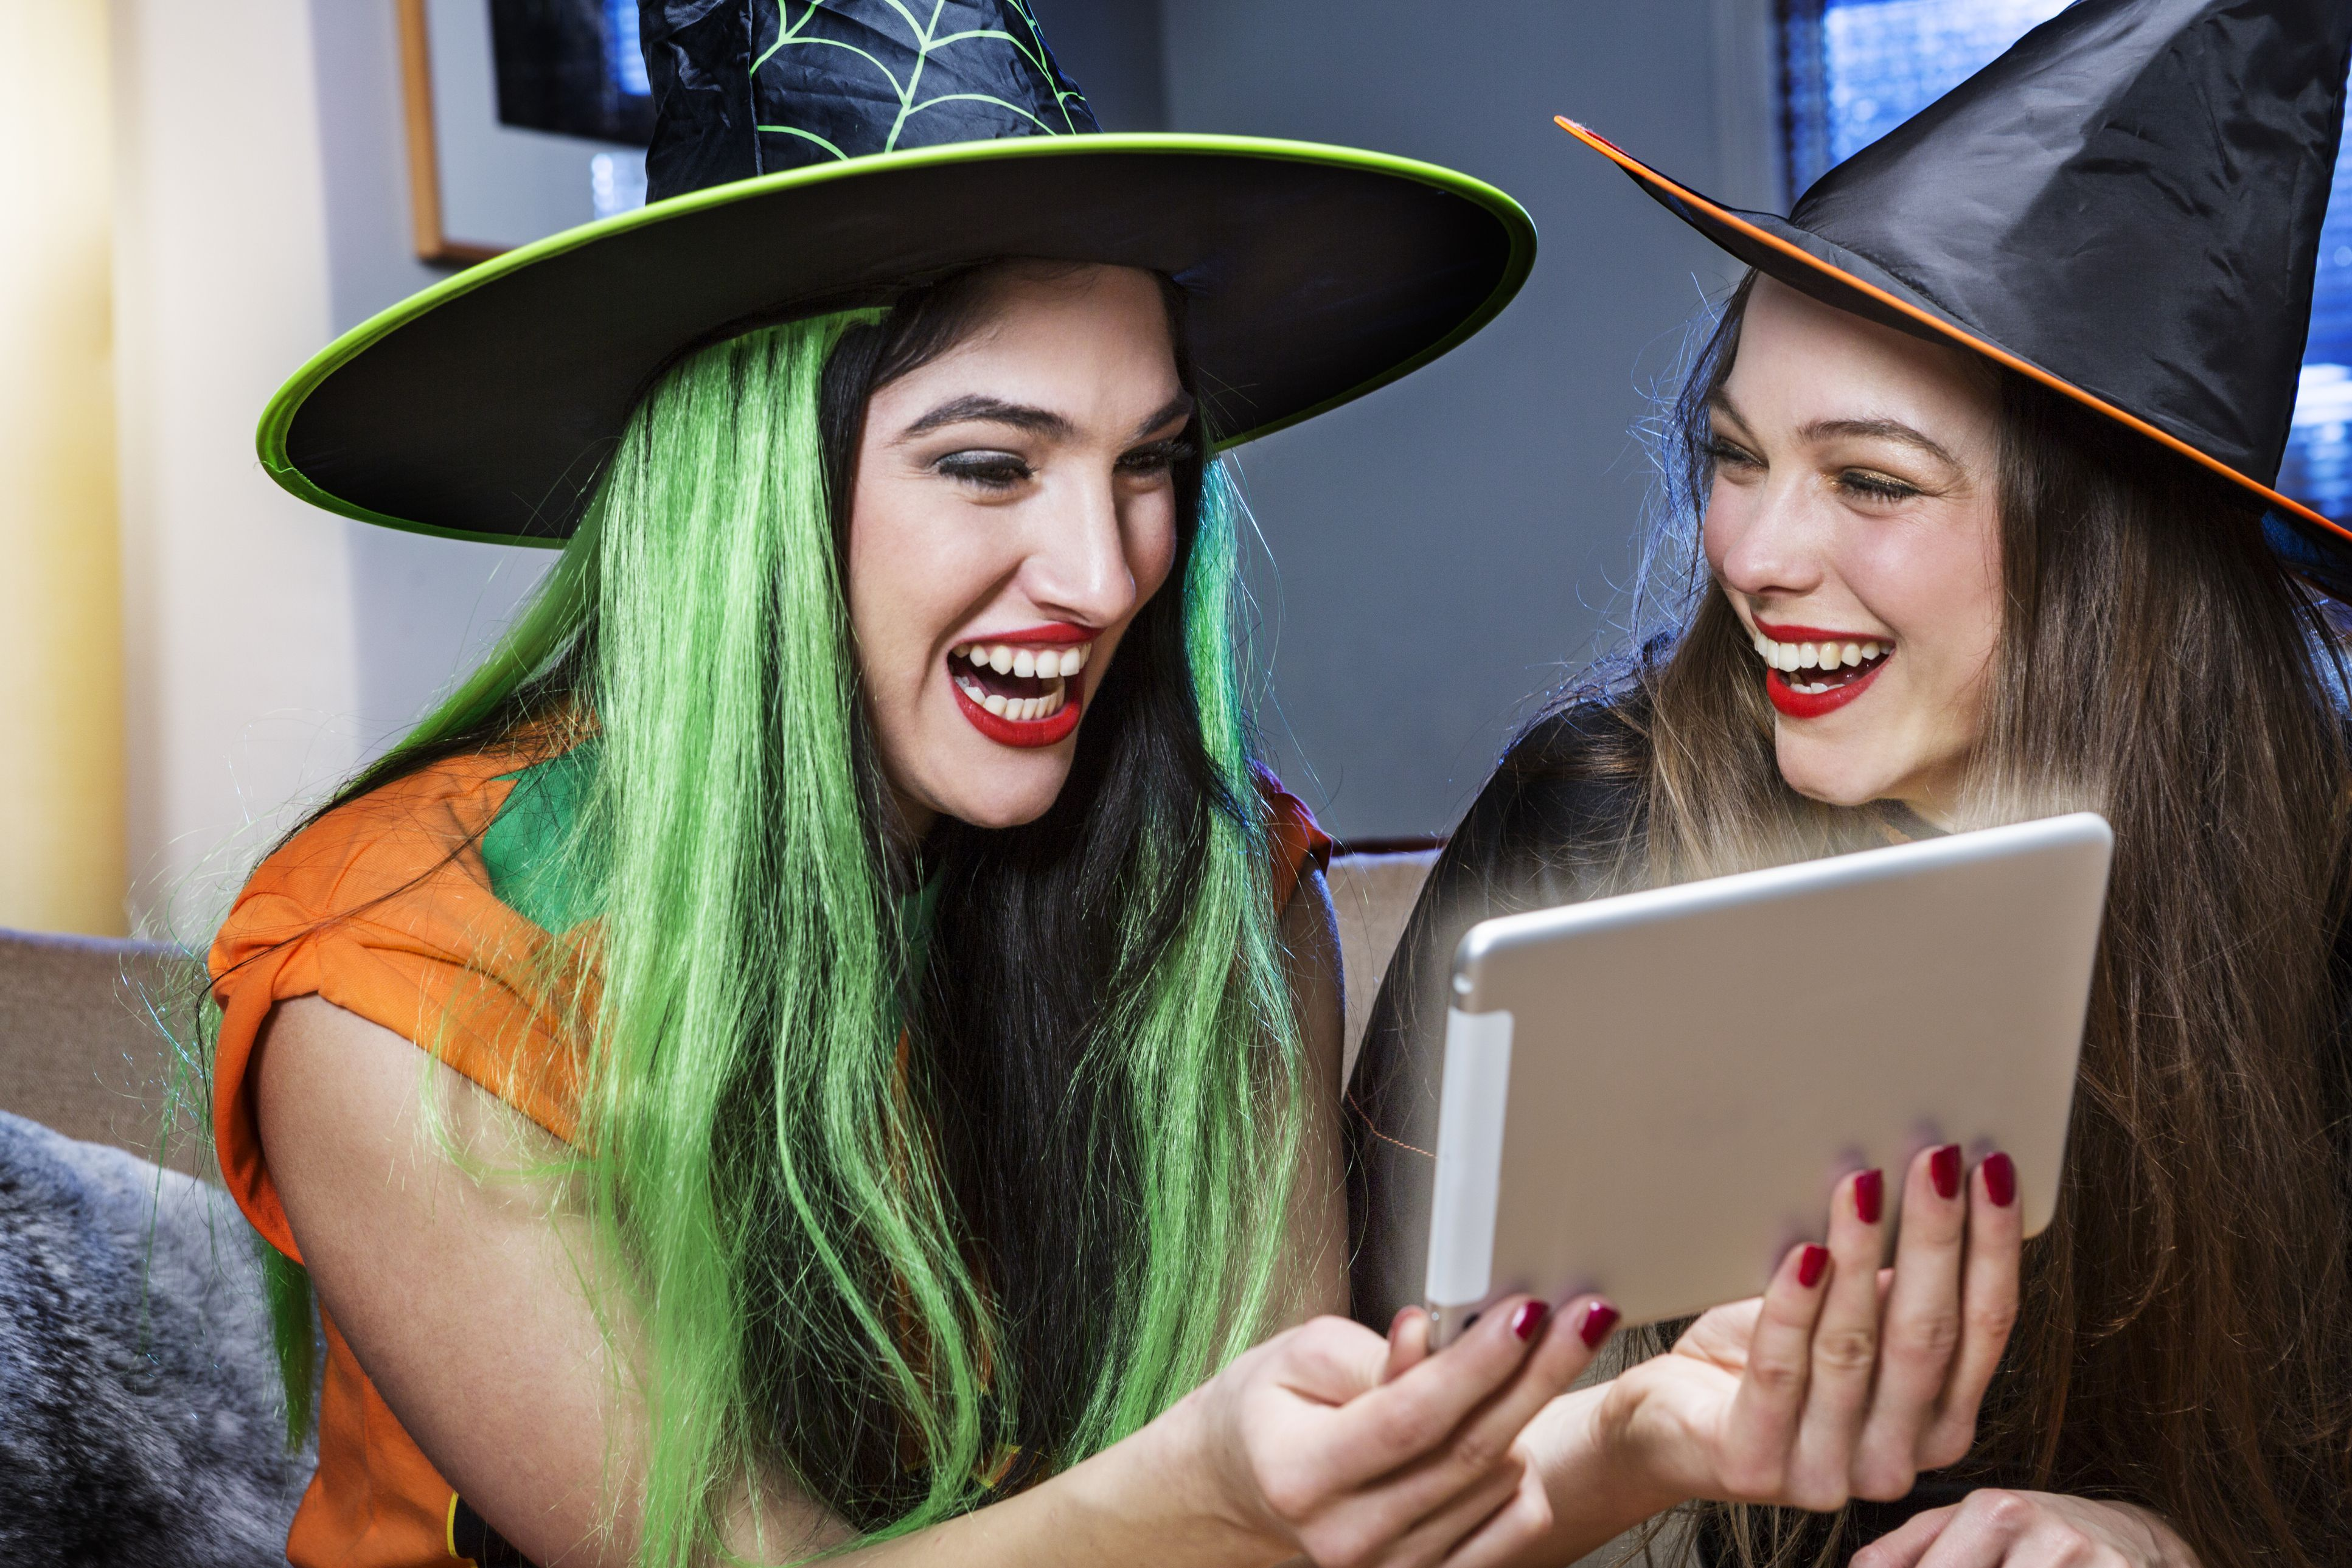 Two Halloween witches looking at an ipad at the Halloween office party.